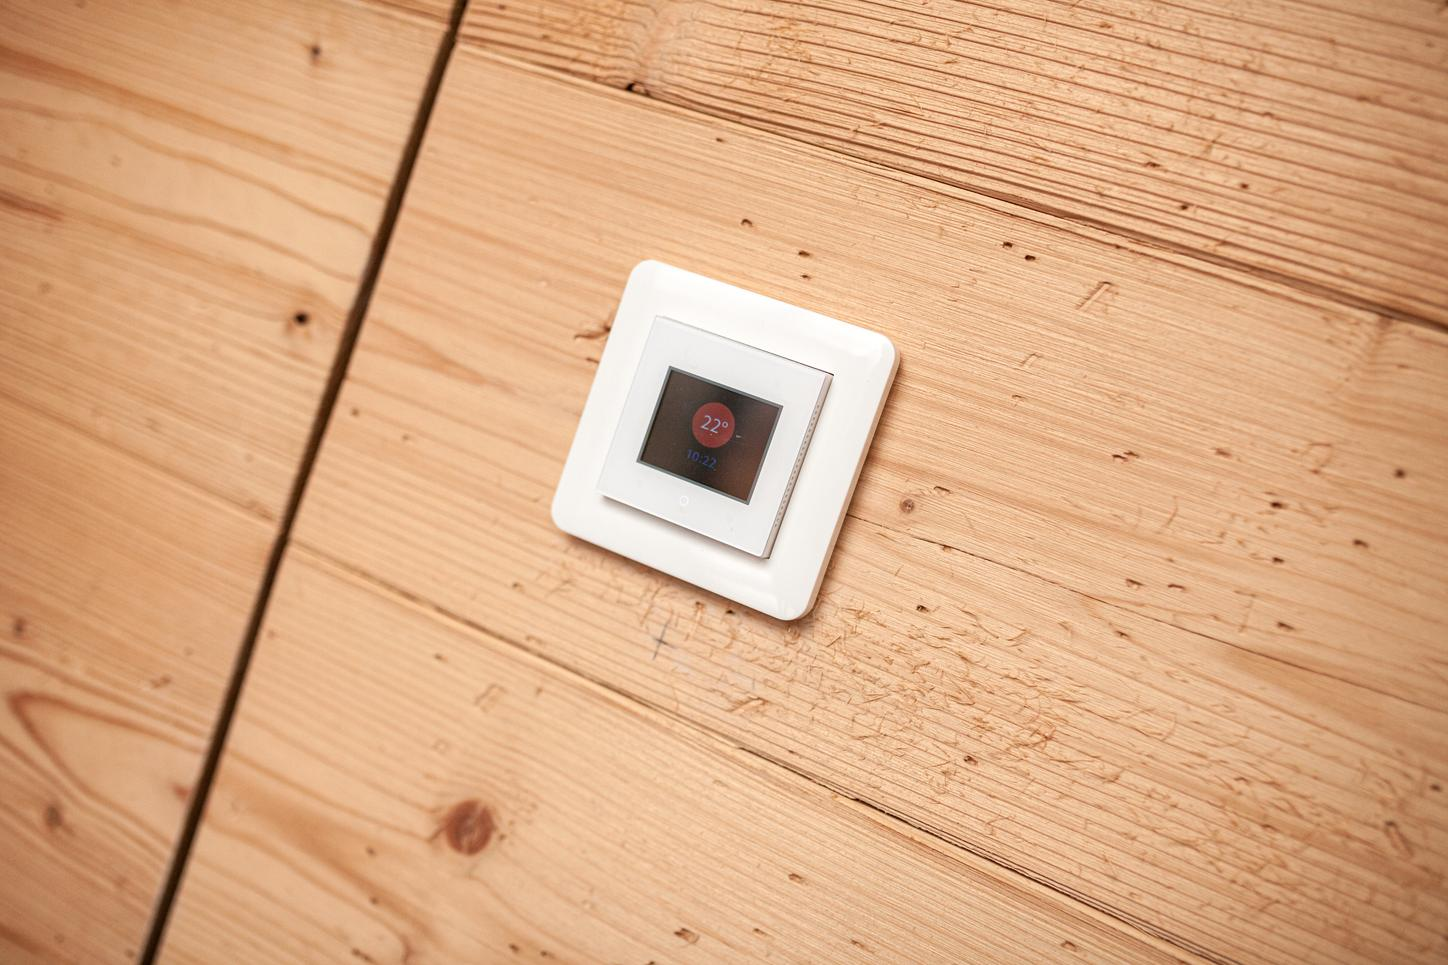 The image shows a room thermostat in Eric Frenzel's extension.